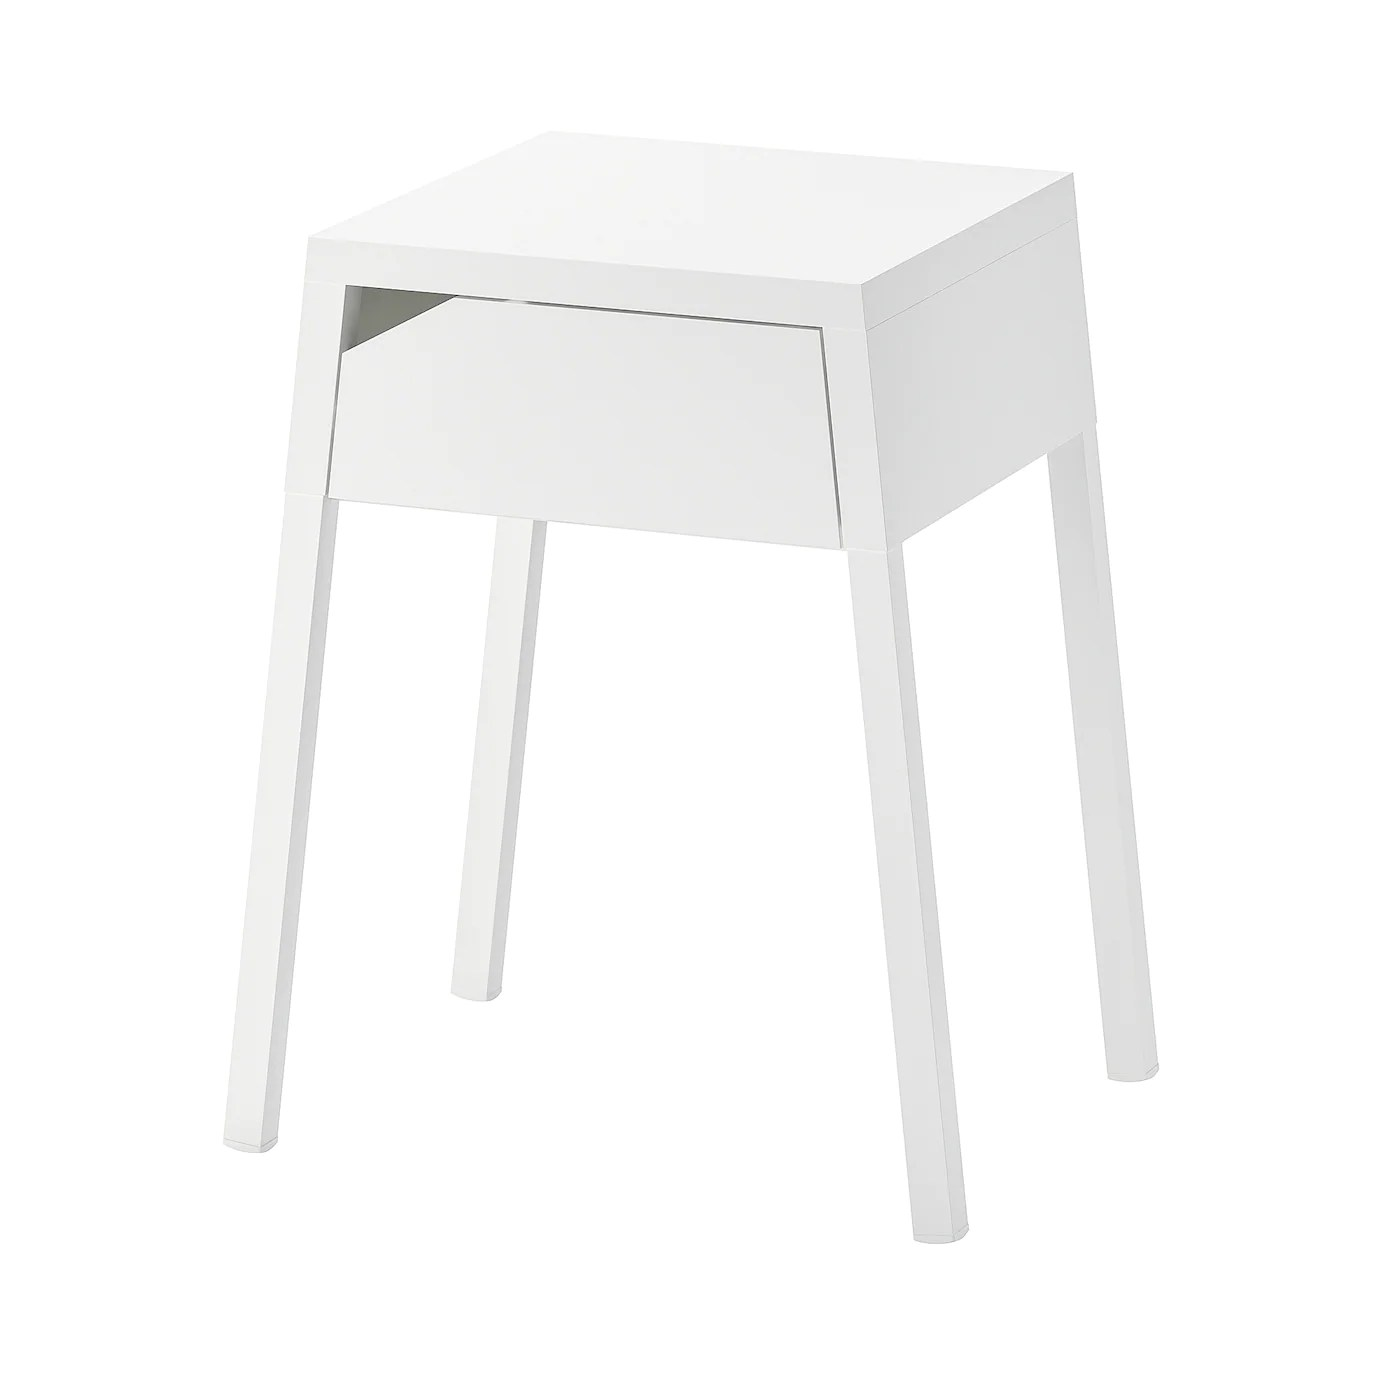 Dimension Table De Chevet Tables De Chevet Tables De Nuit Design Pas Cher Ikea